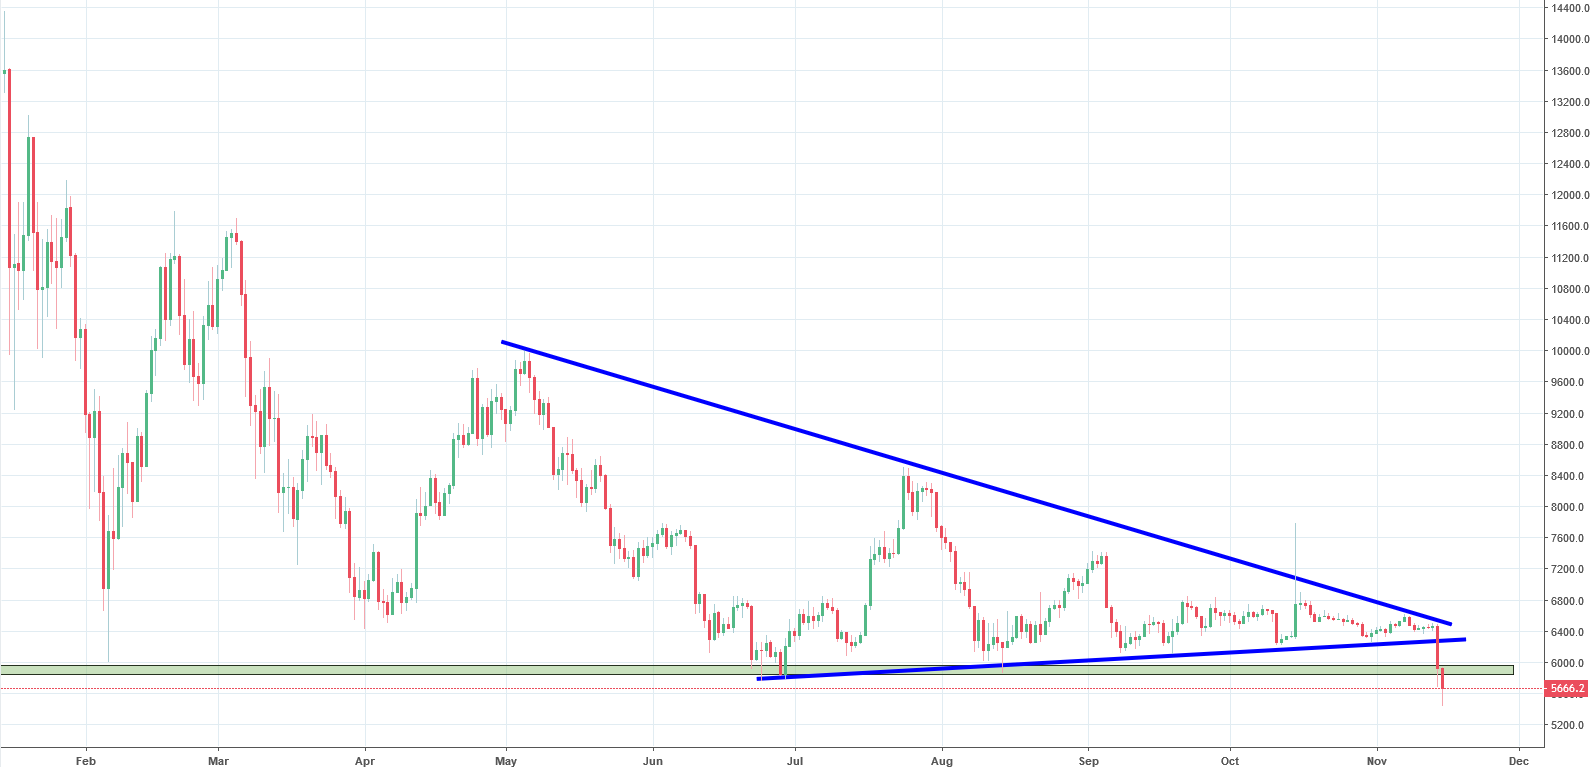 Bitcoin Analysis - the next target for the price is set at $3,000